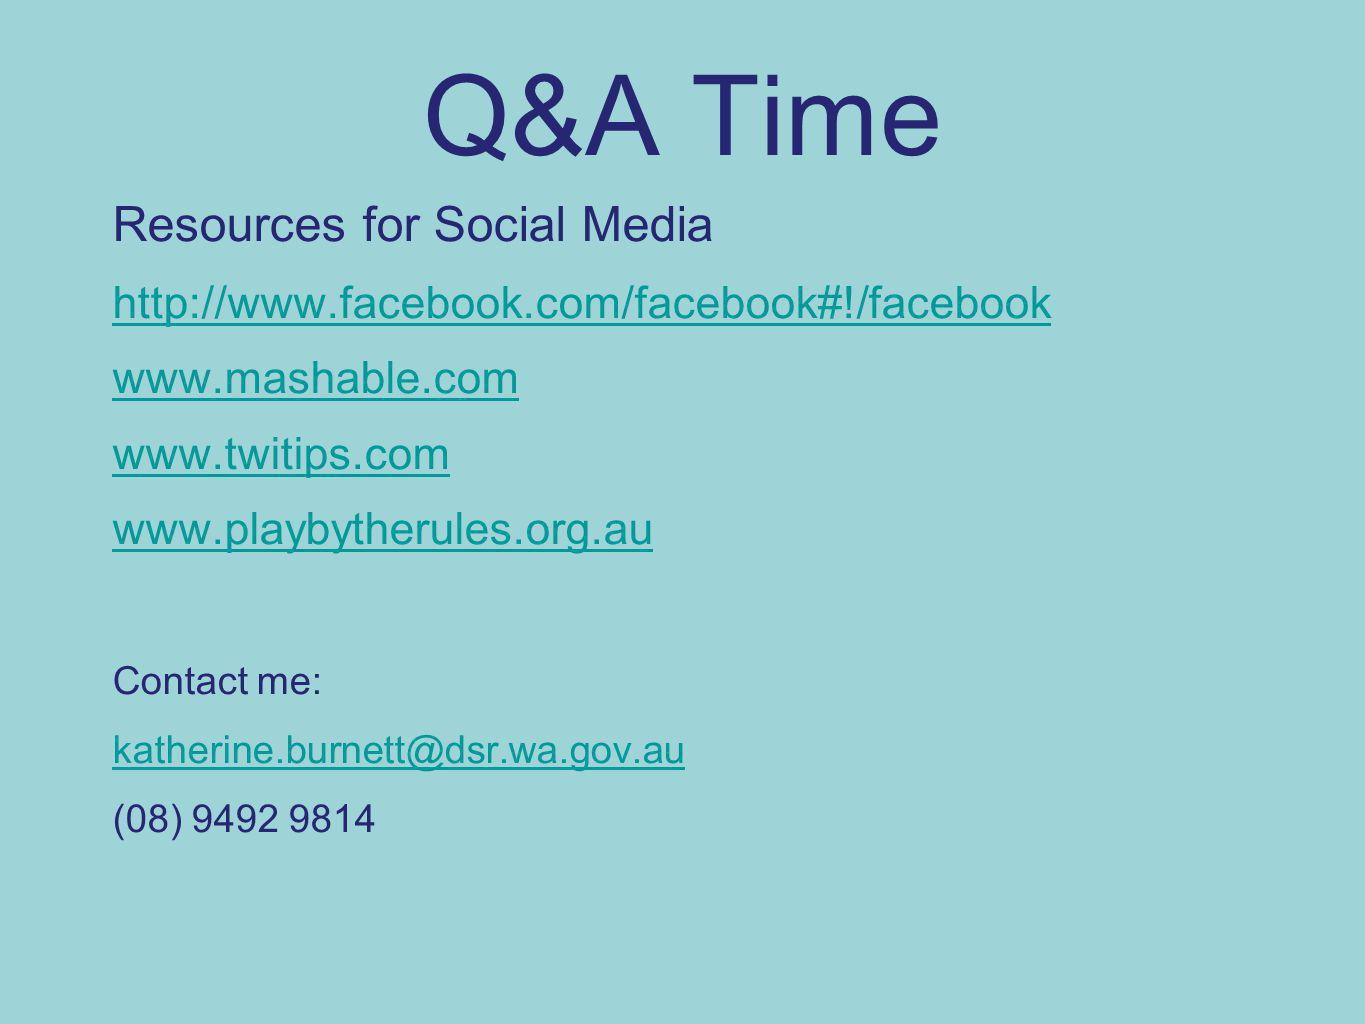 Q&A Time Resources for Social Media http://www.facebook.com/facebook#!/facebook www.mashable.com www.twitips.com www.playbytherules.org.au Contact me: katherine.burnett@dsr.wa.gov.au (08) 9492 9814